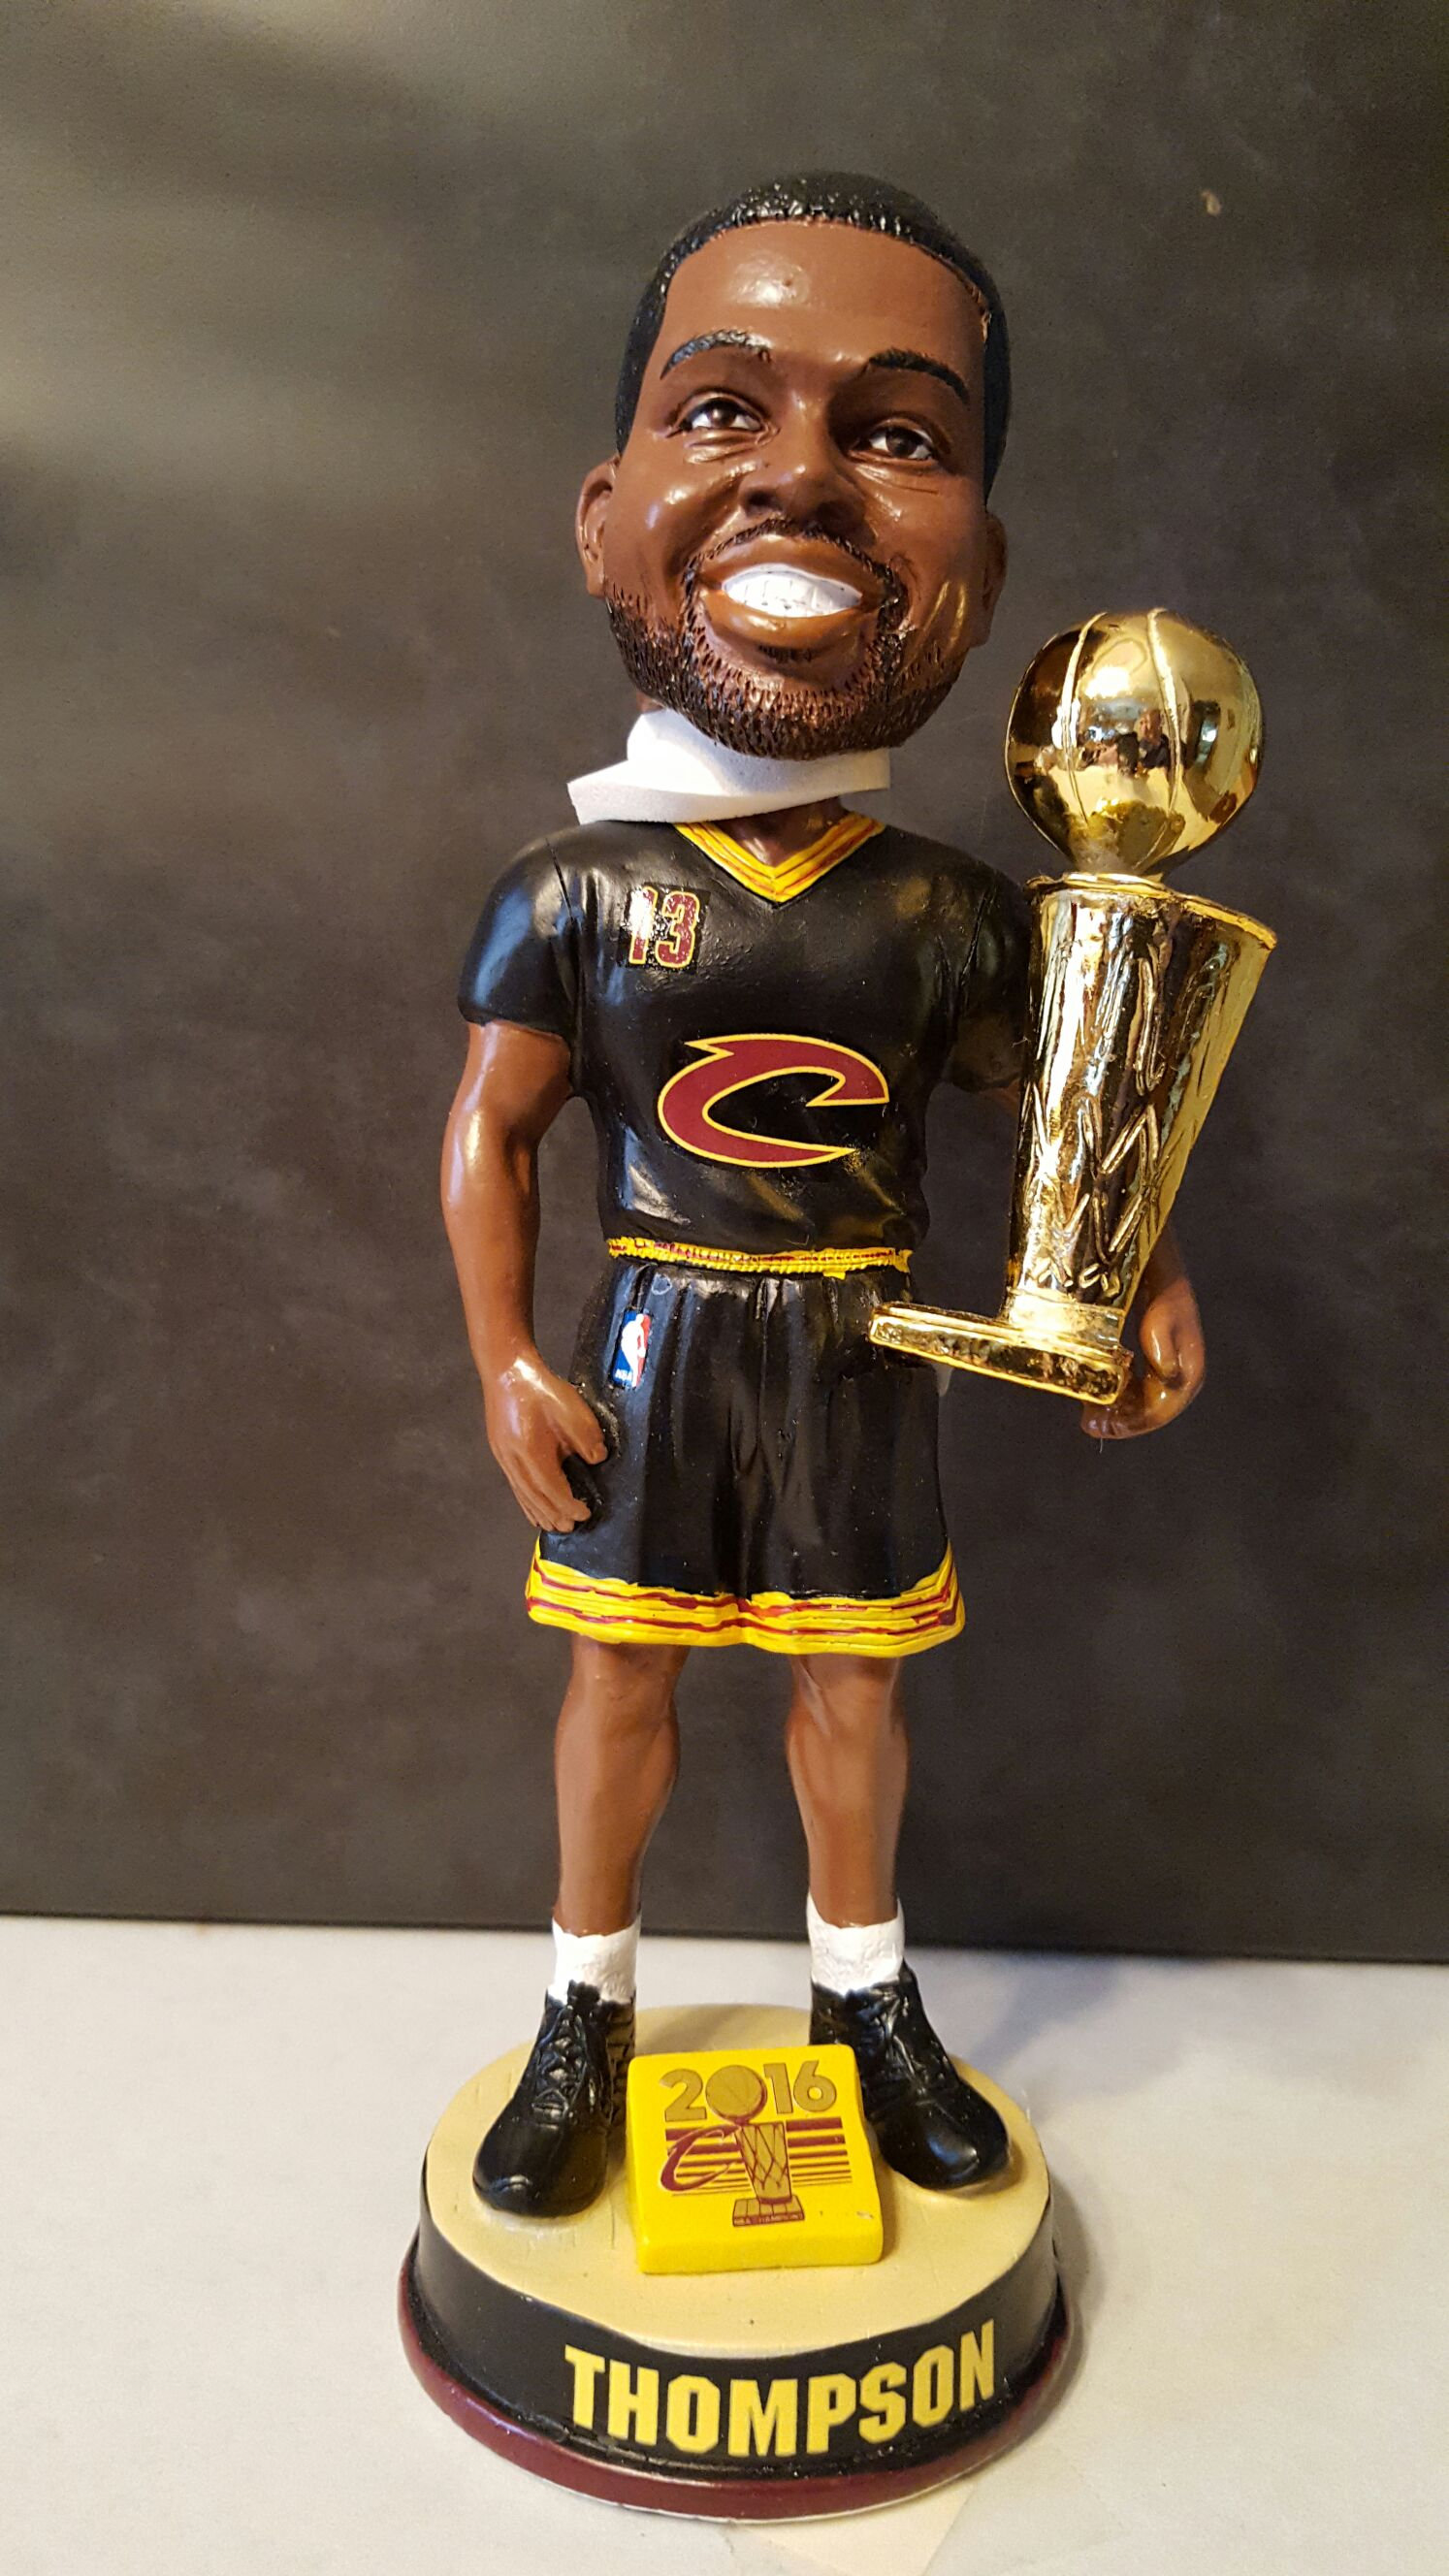 Tristan Thompson Bobblehead - Basketball (2016) front image (front cover)